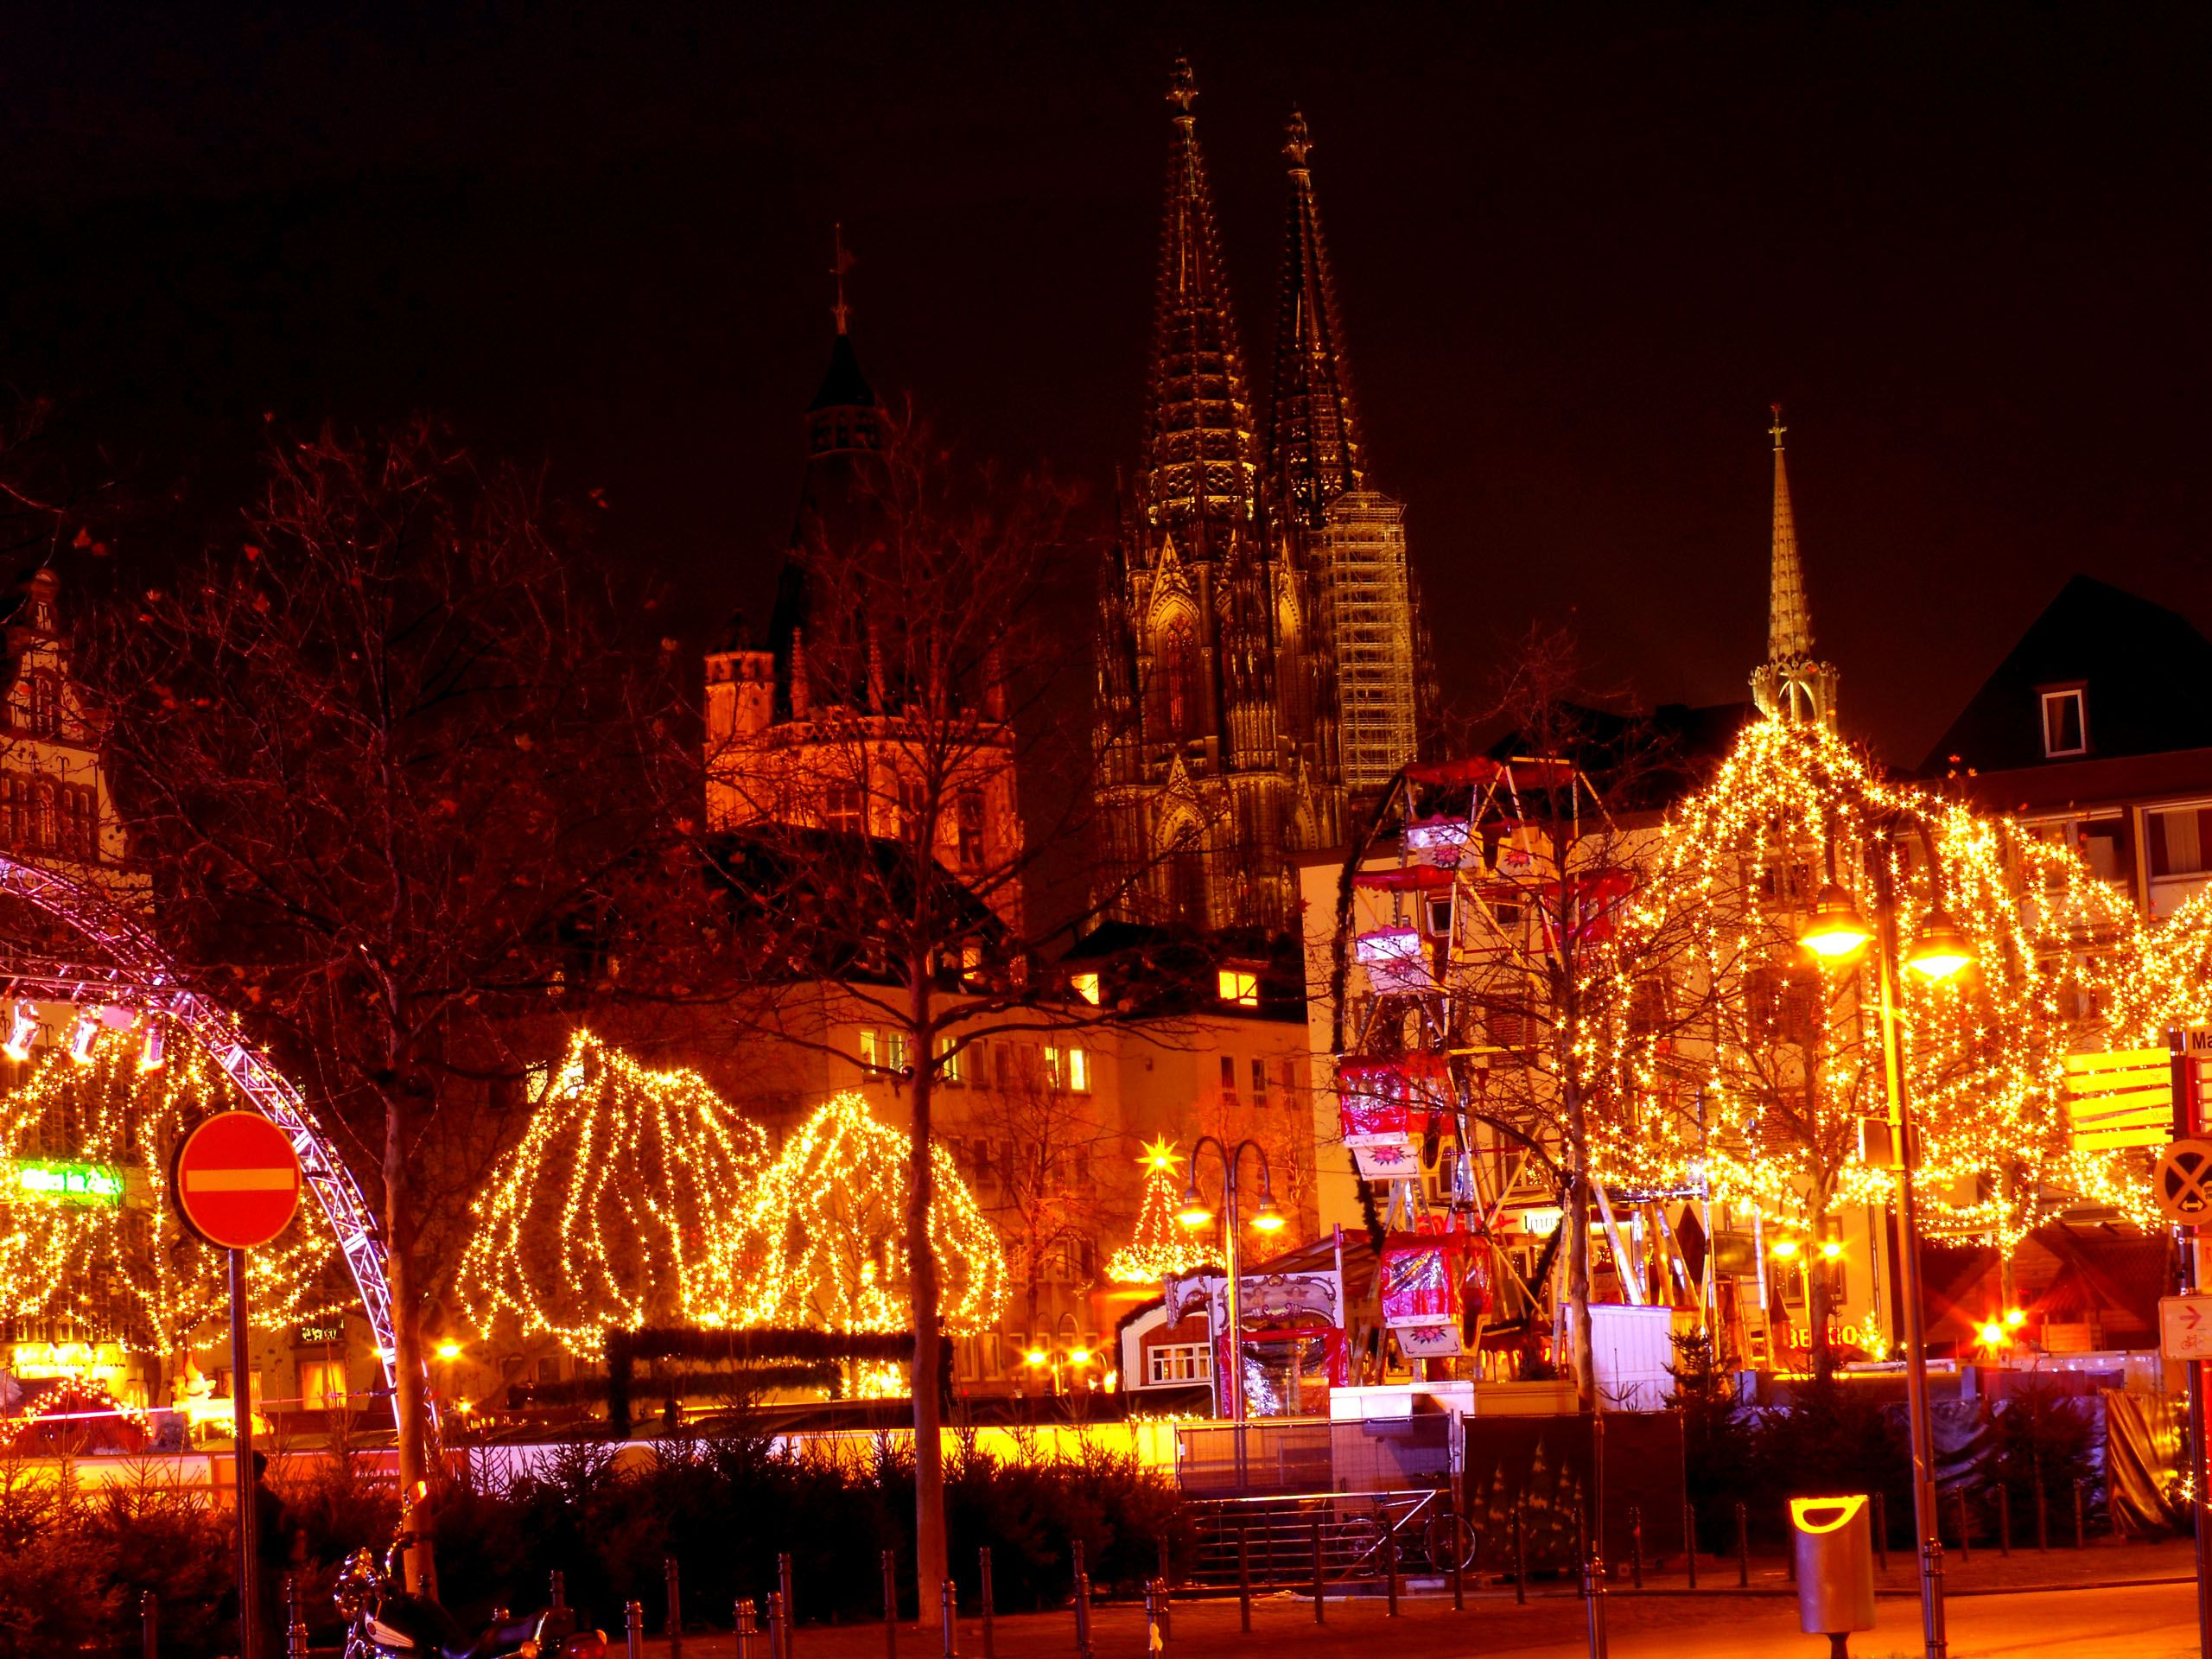 Christmas-market-Altstadt-Nord-Cologne-Germany